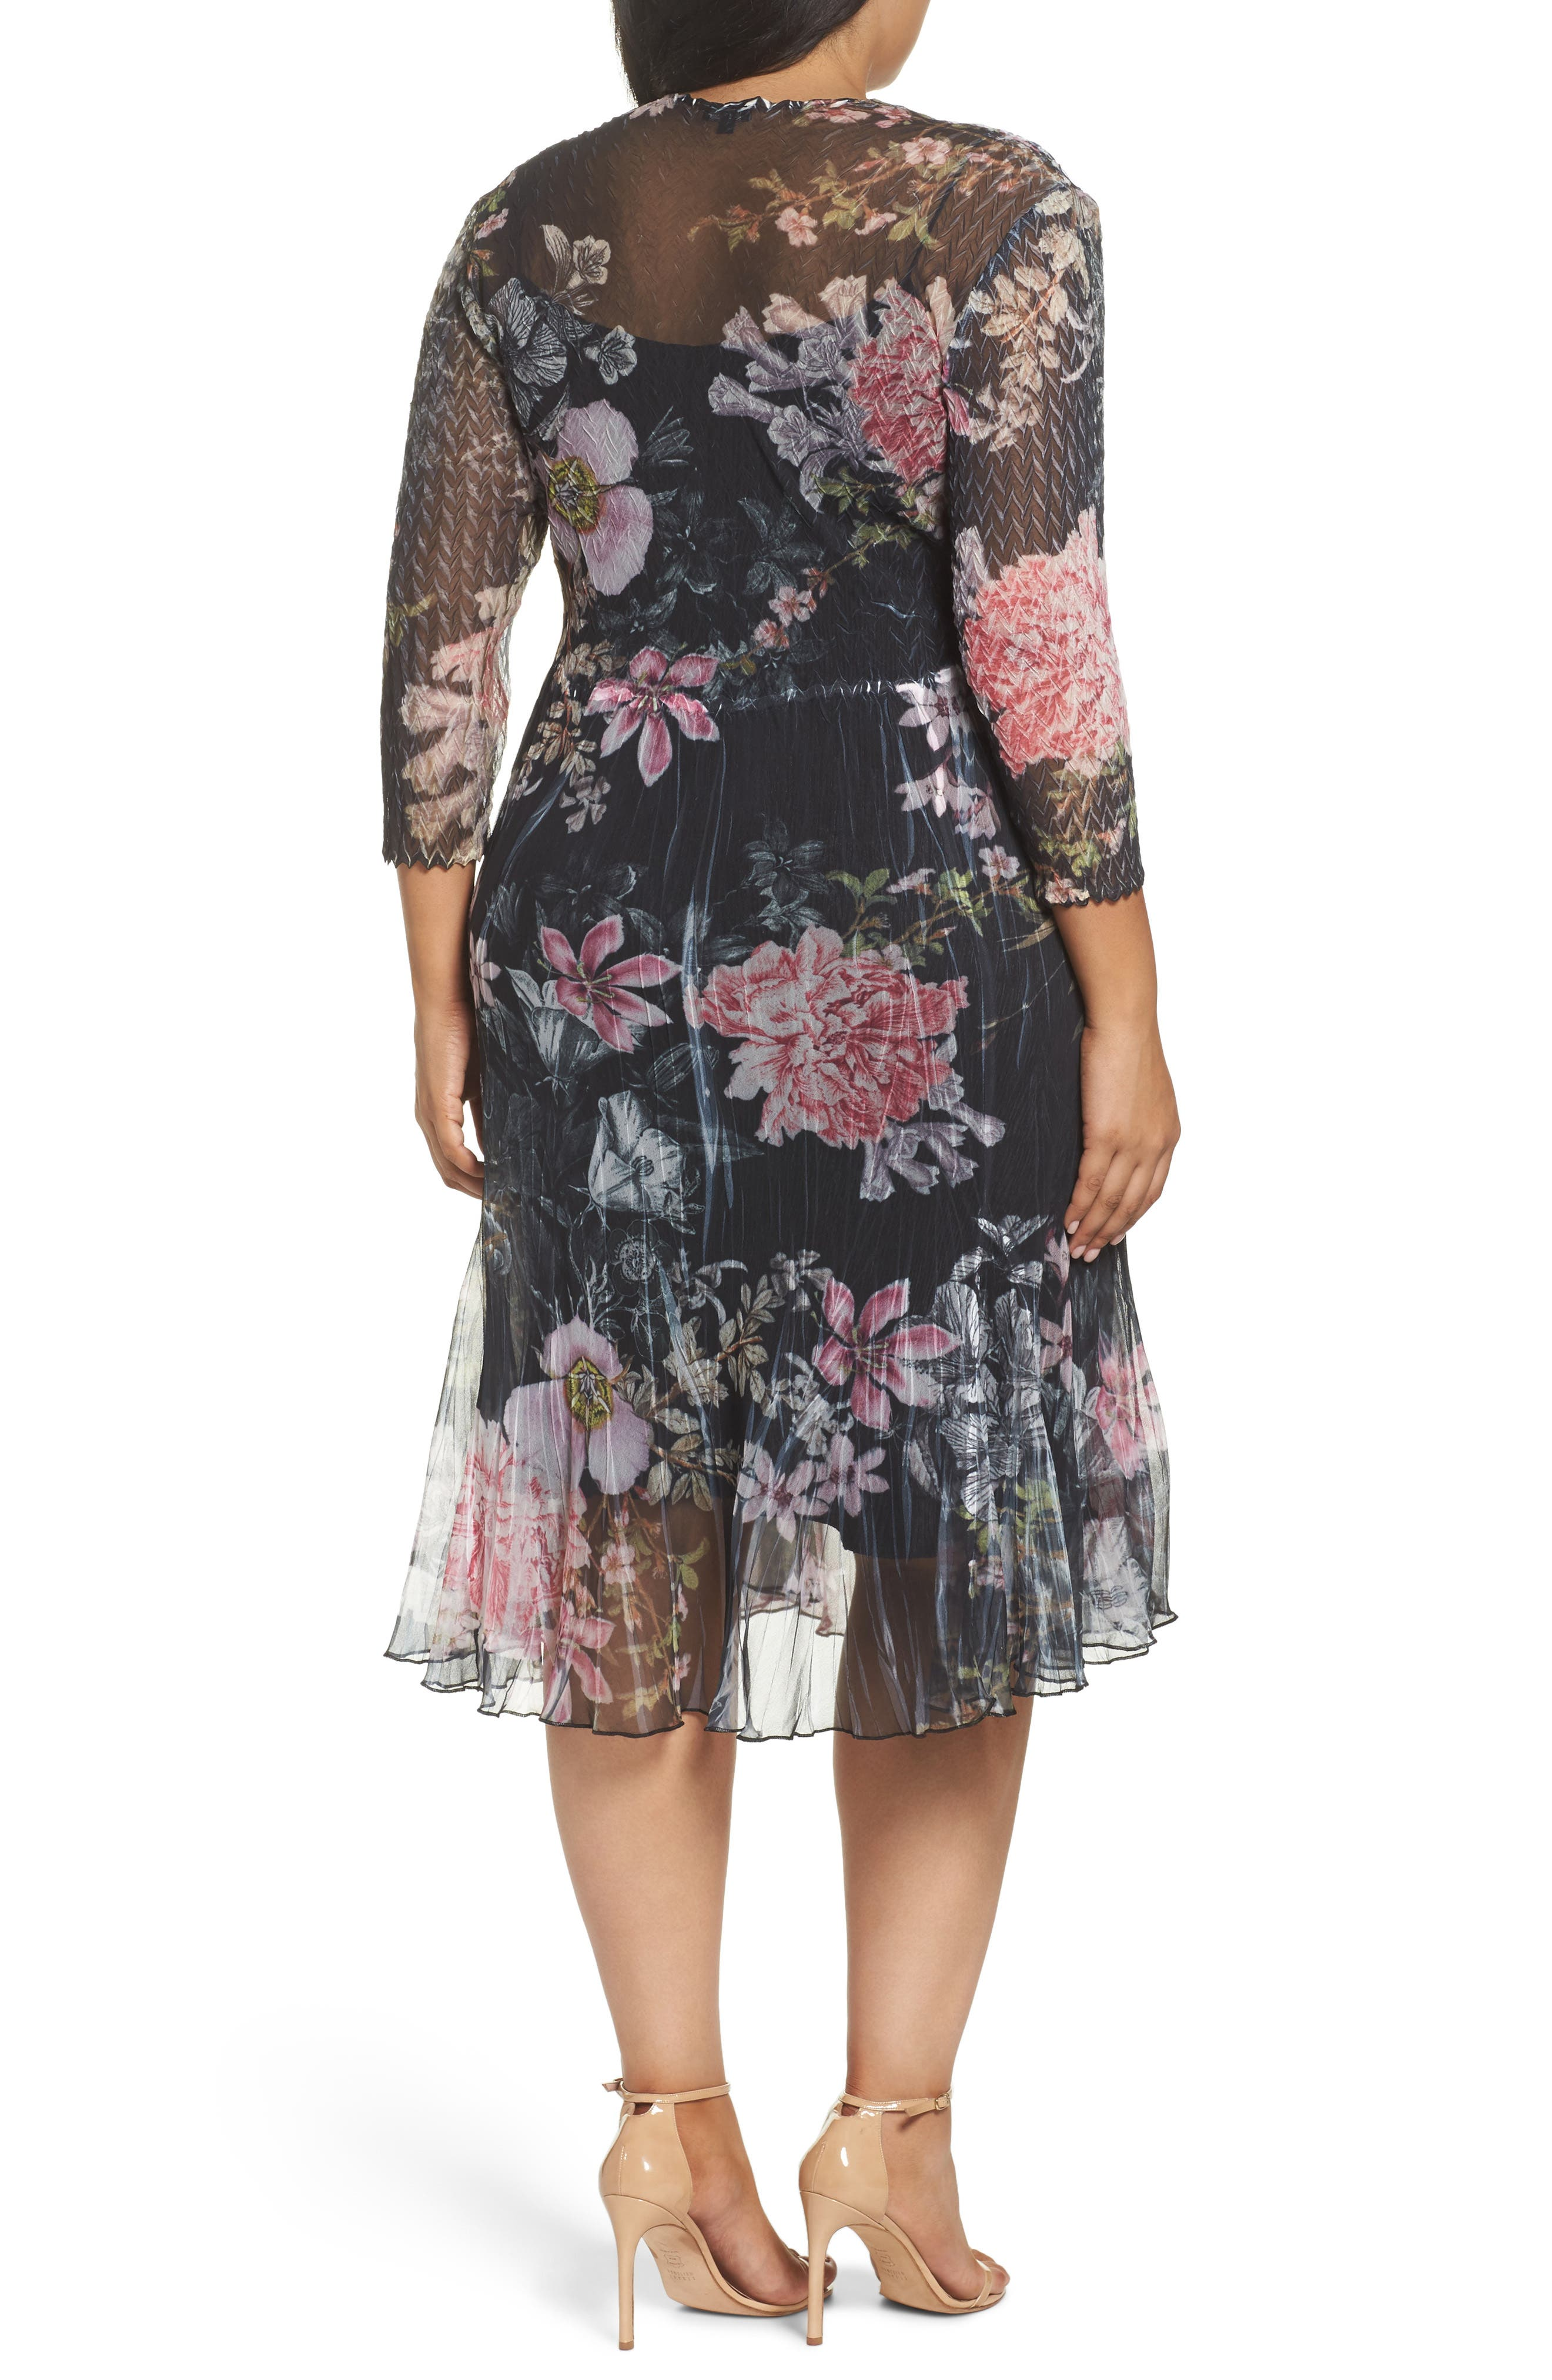 Kamarov Floral Charmeuse & Chiffon Floral A-Line Dress,                             Alternate thumbnail 2, color,                             Moon Flower